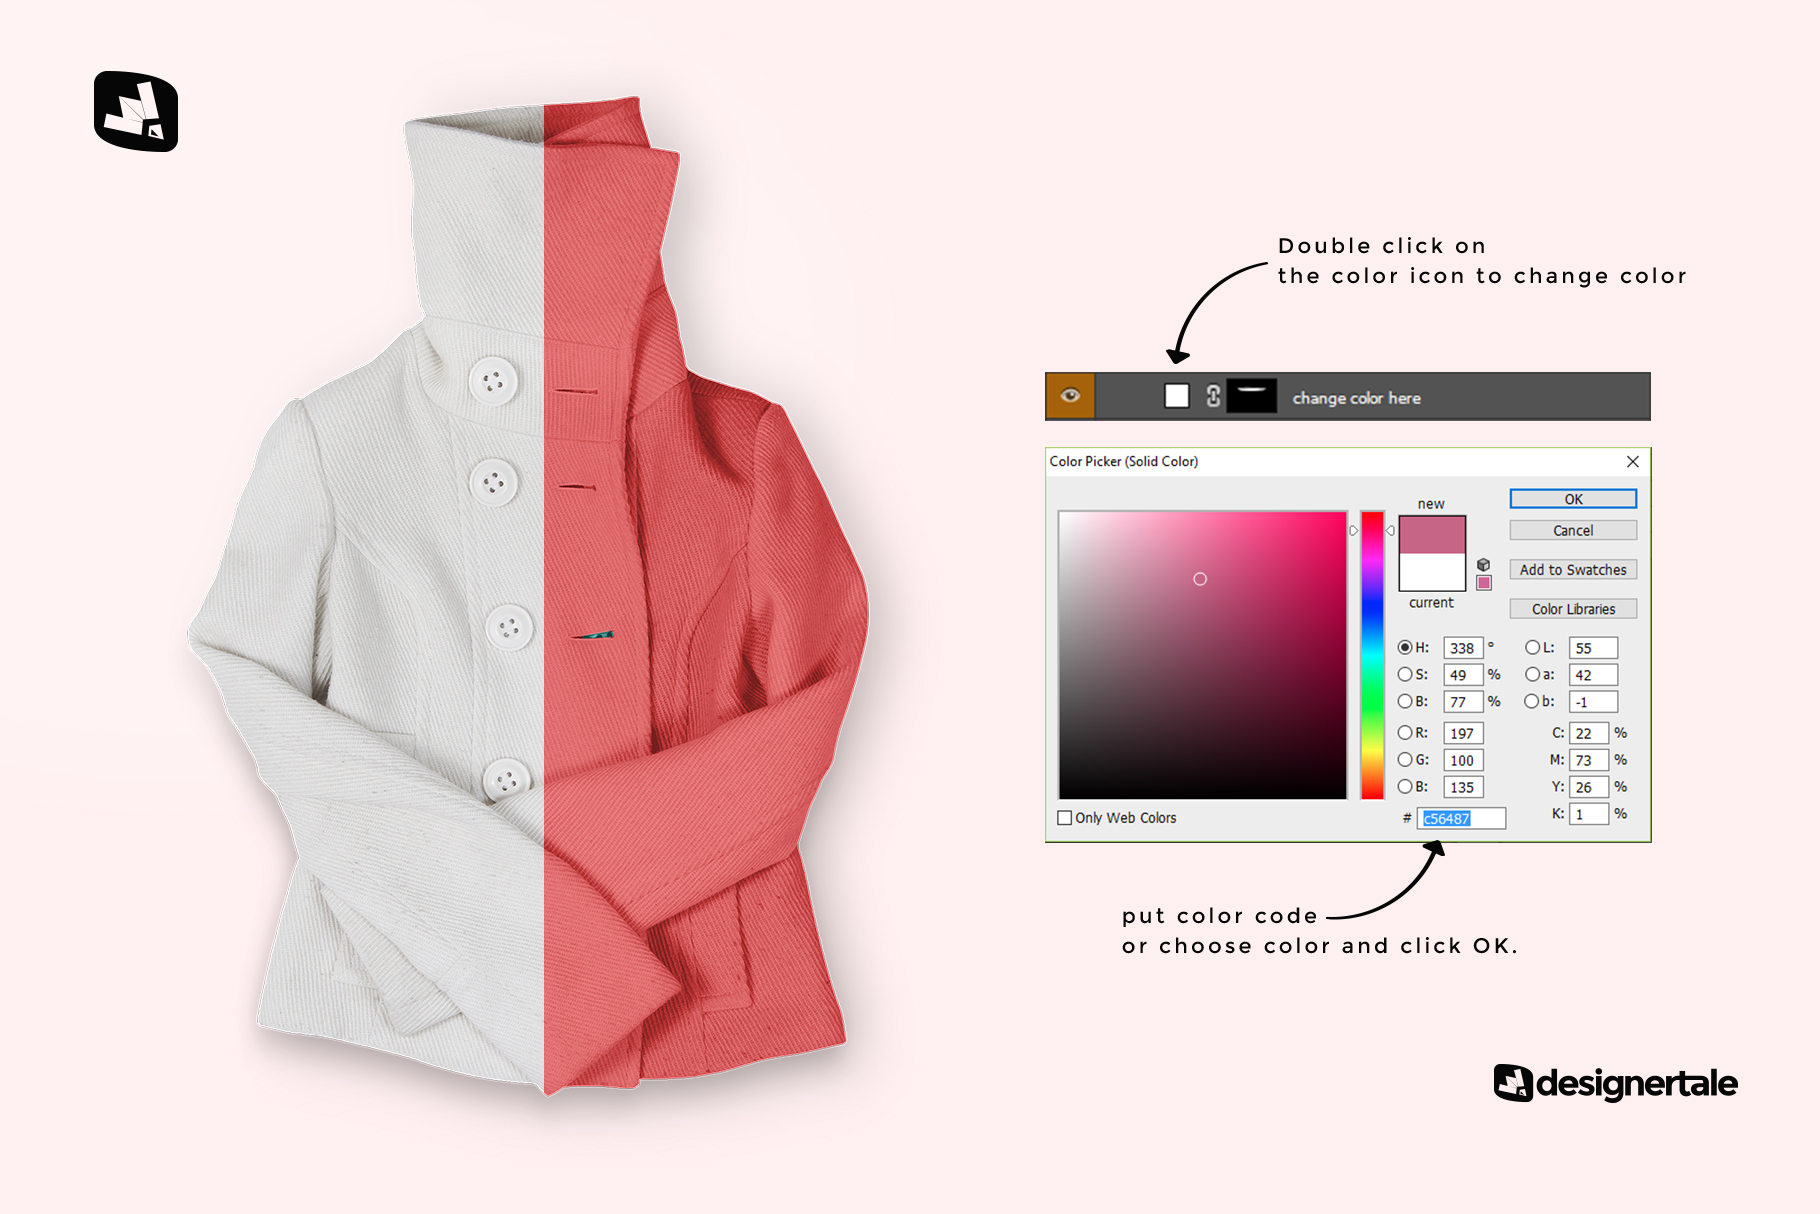 how to change color of the women's high collar jacket mockup